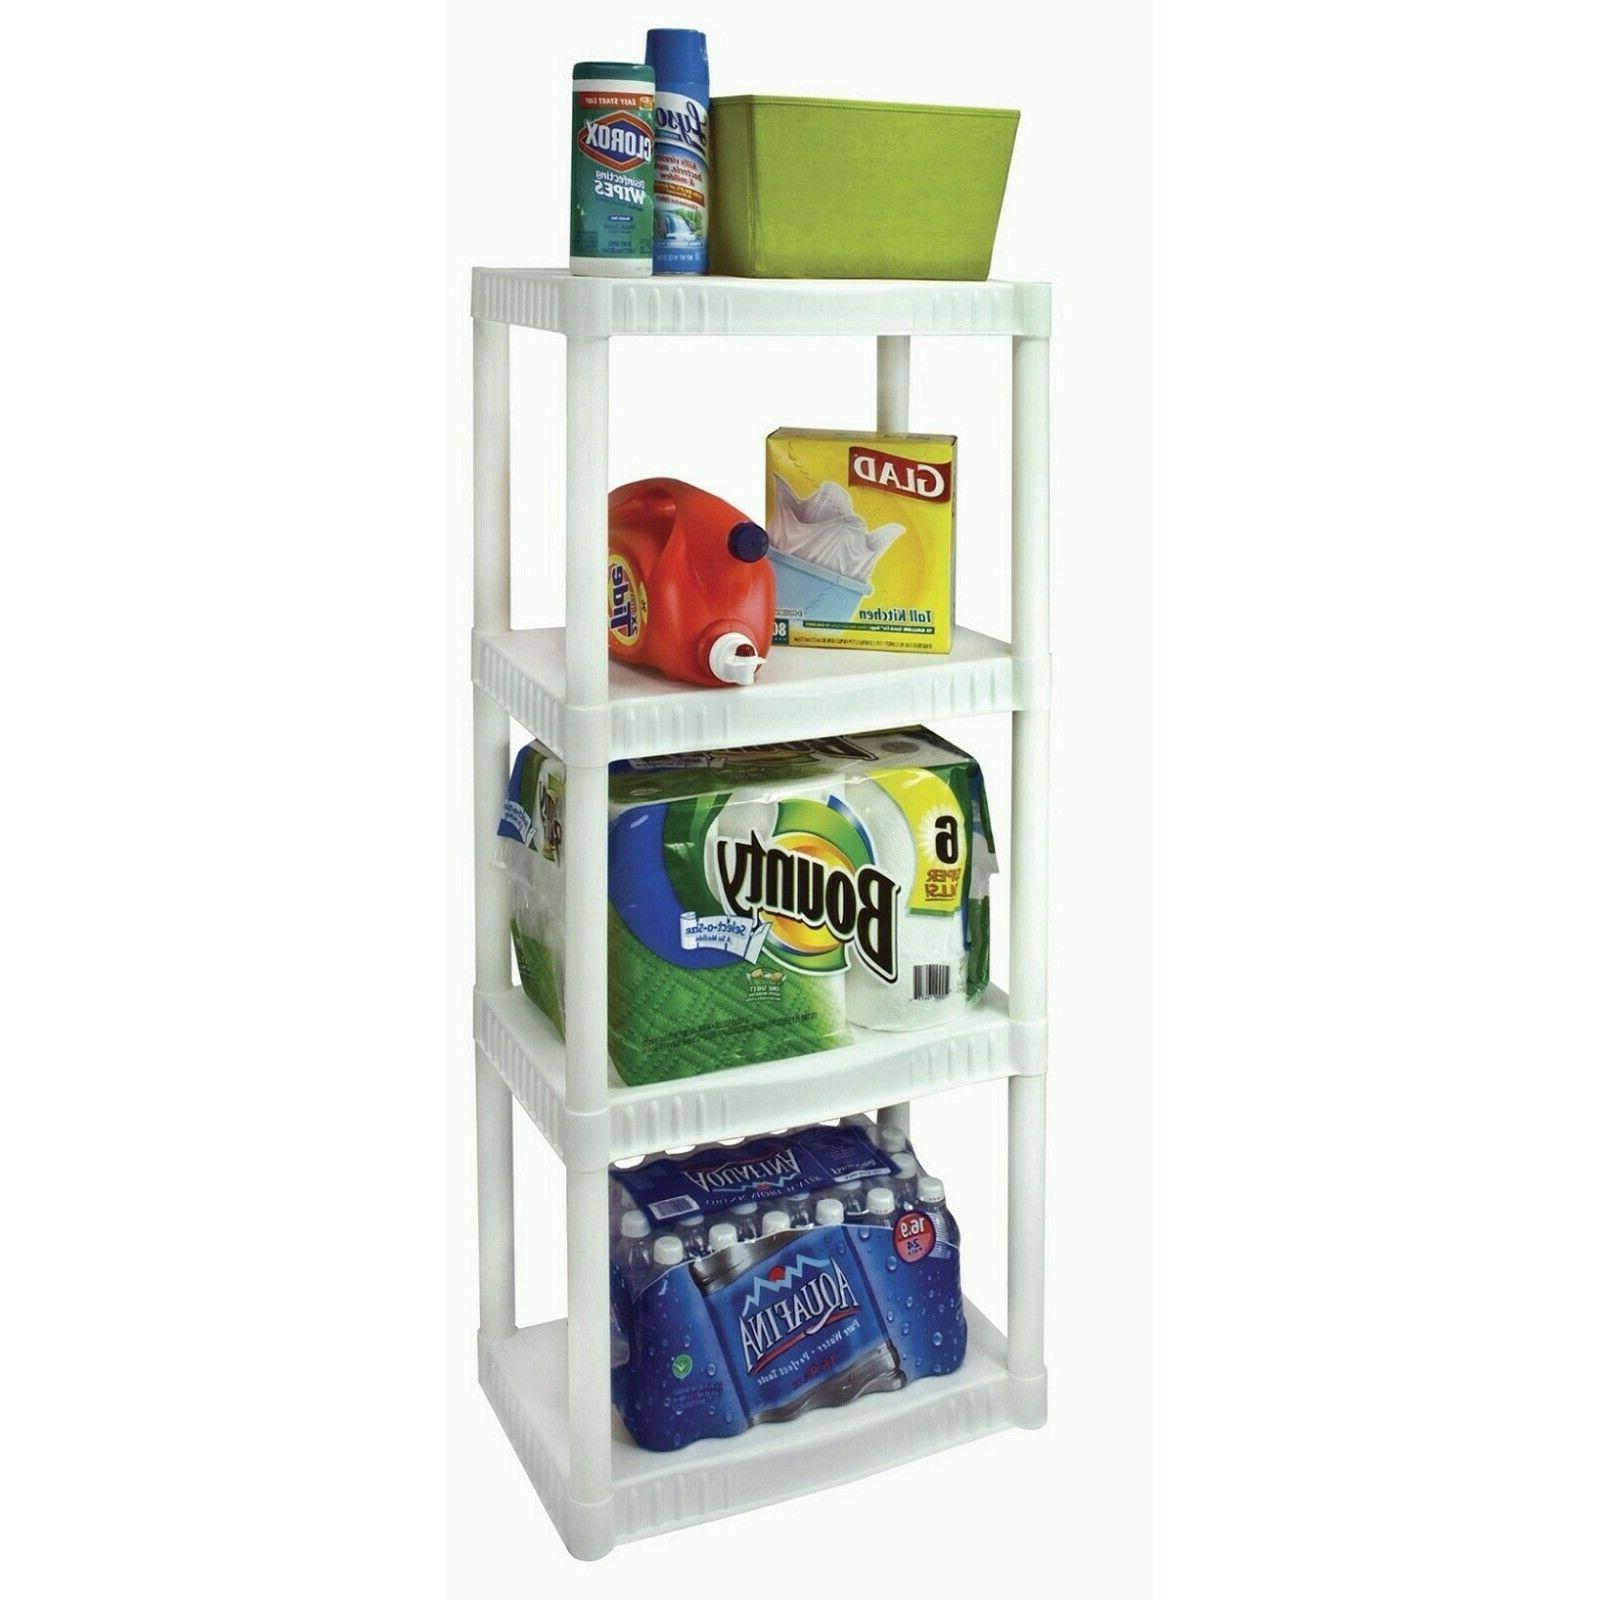 Plano 4-Tier Heavy-Duty Plastic Shelves, White